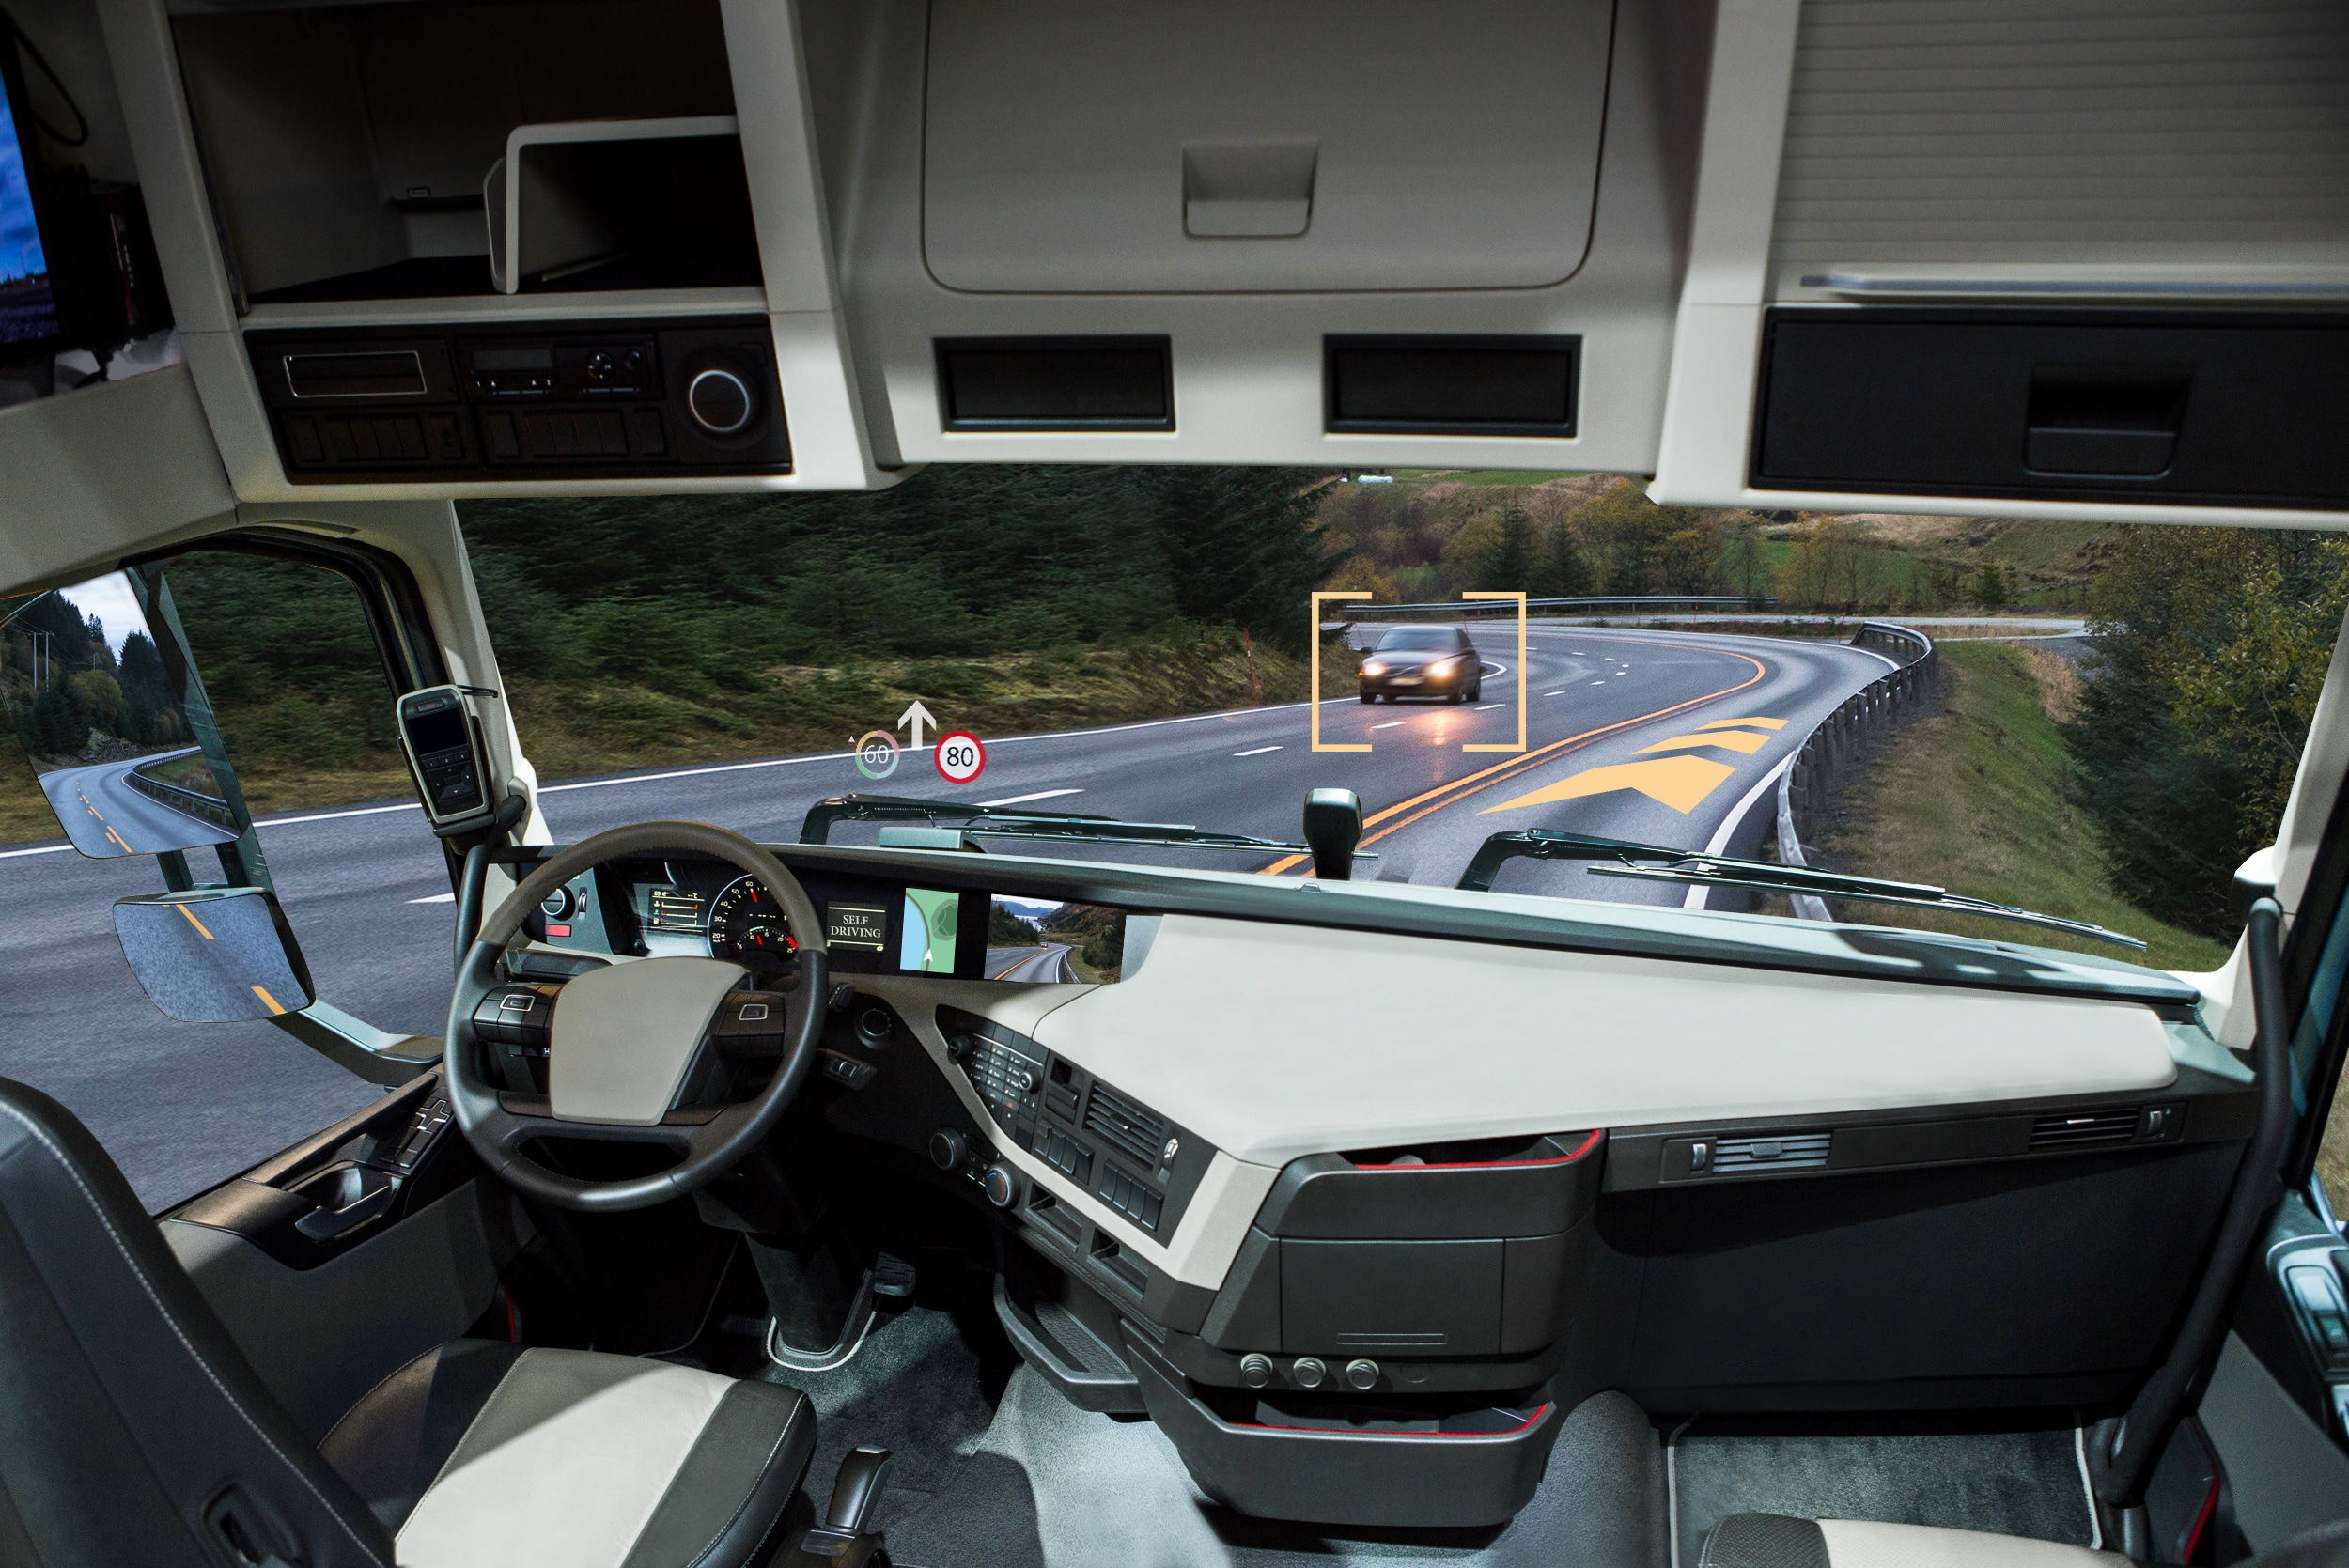 Self driving truck with head up display on a road.